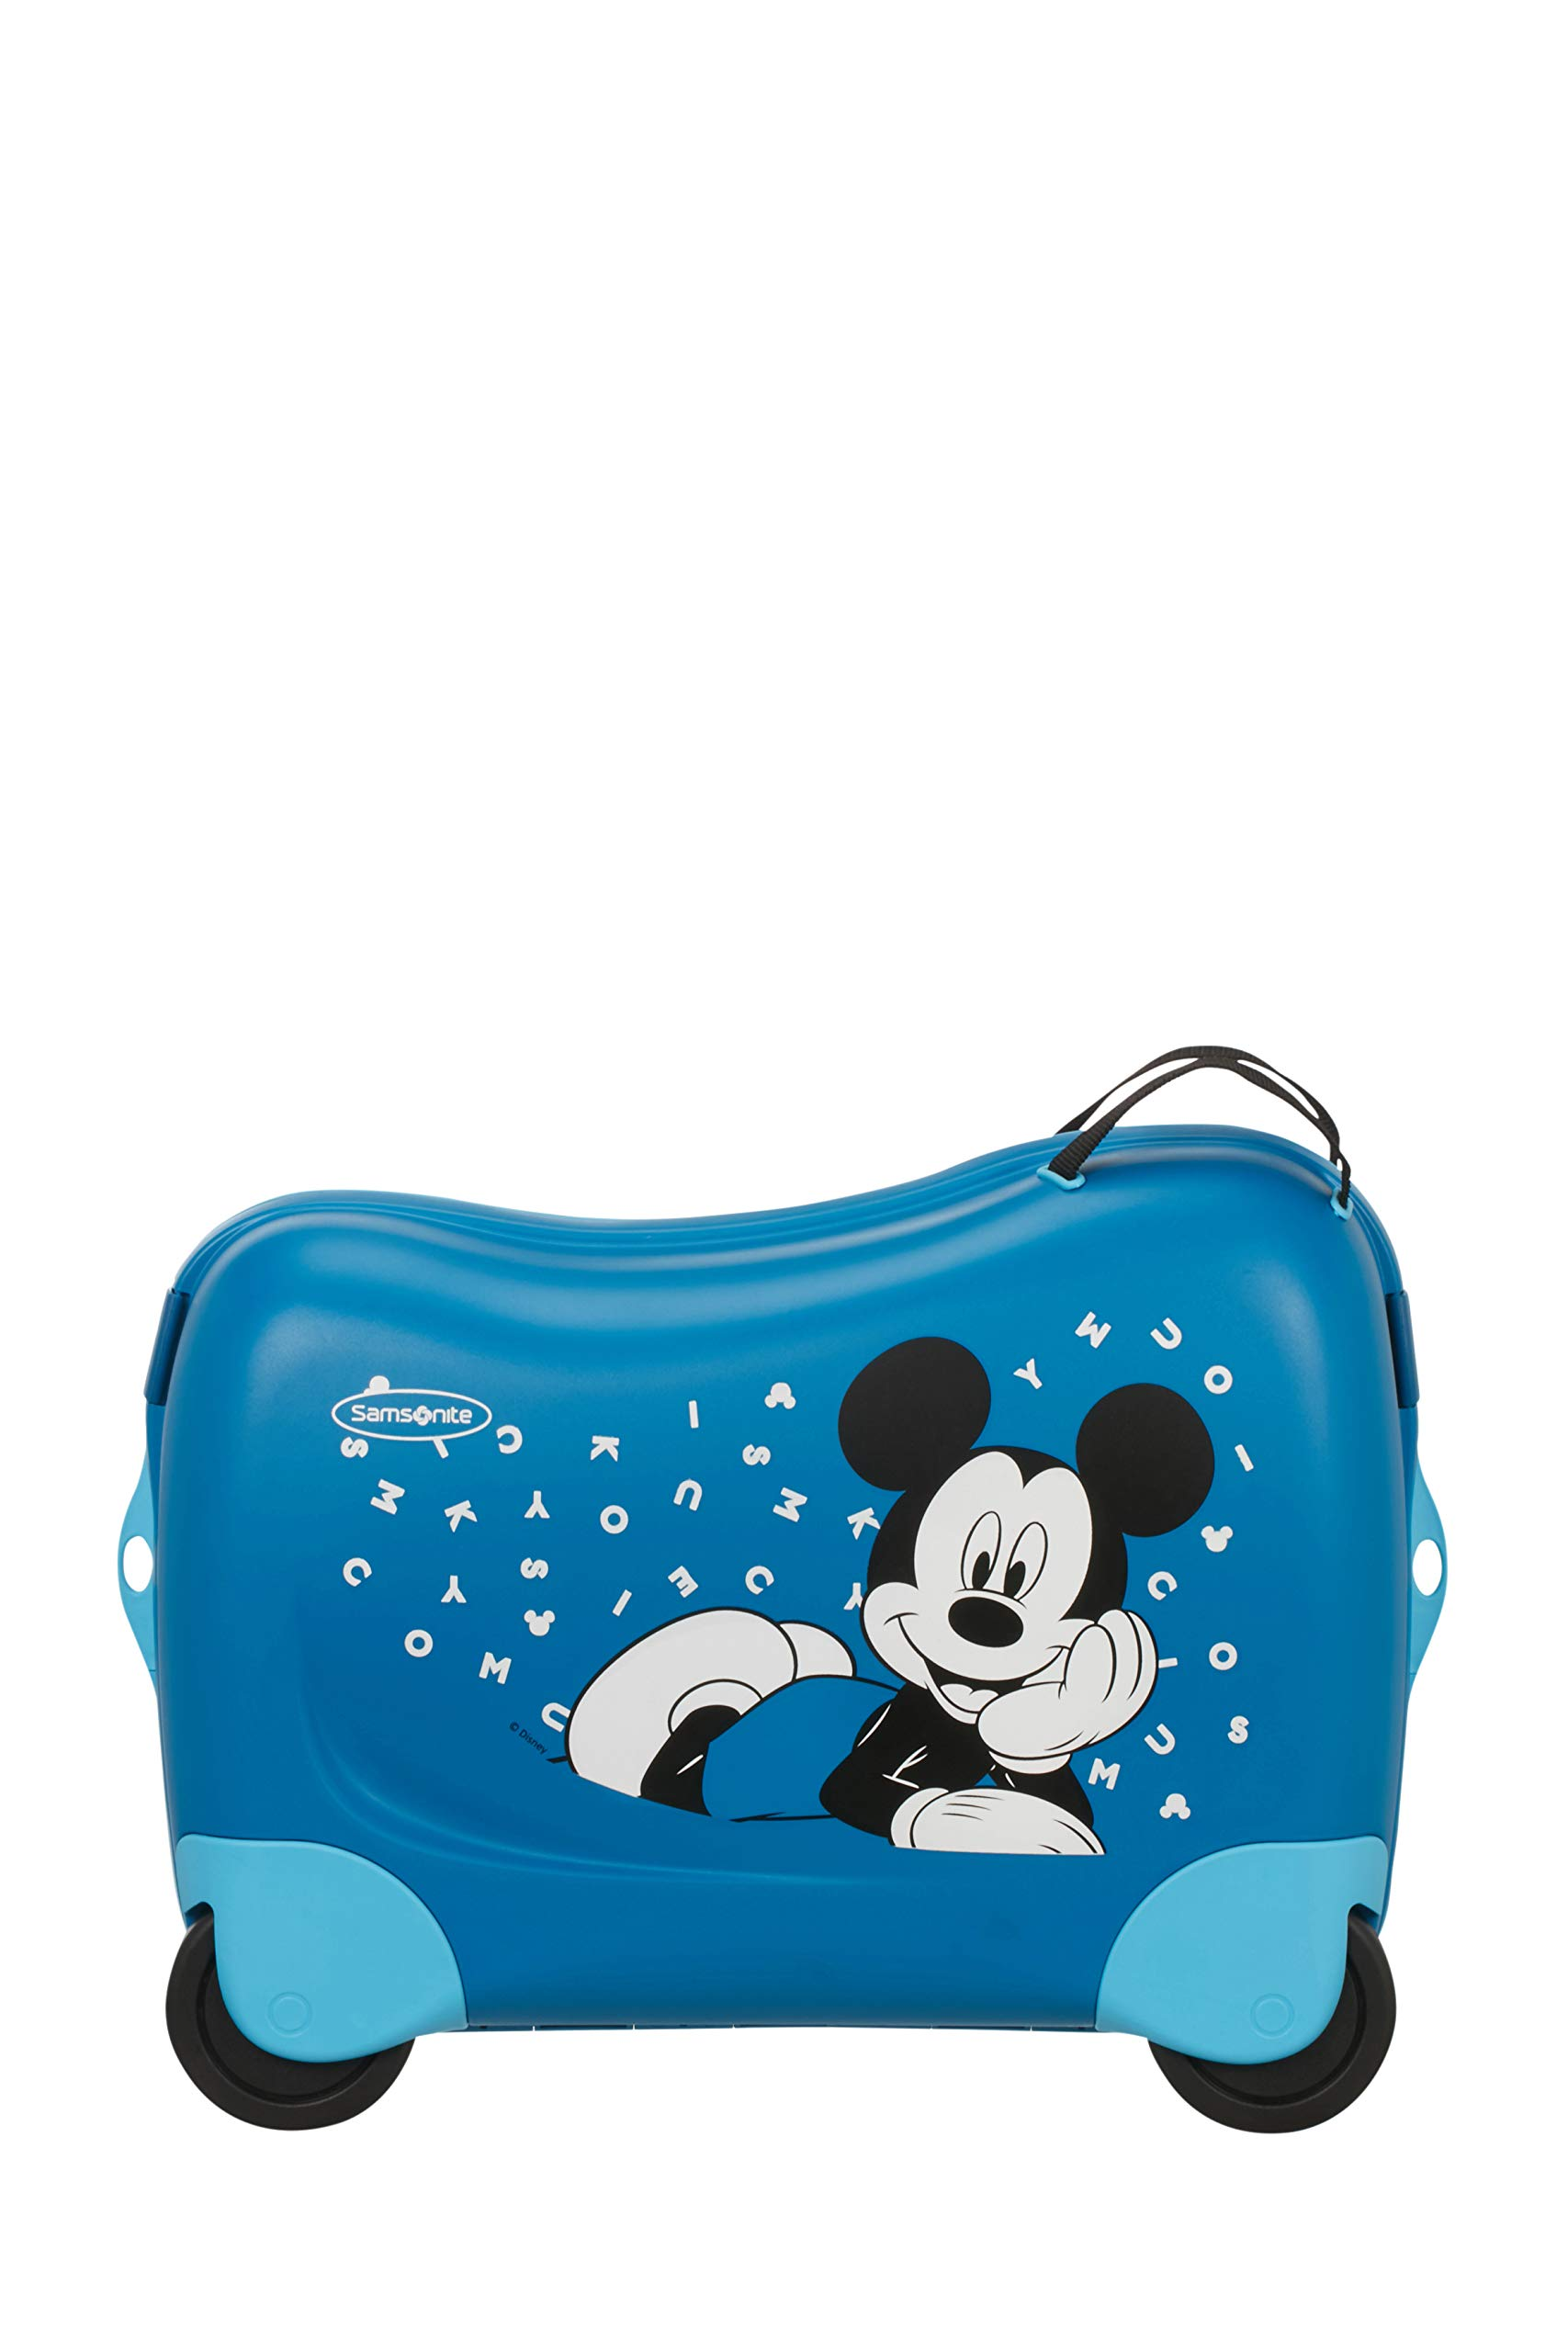 Samsonite-Dream-Rider-Disney-Kindergepck-51-cm